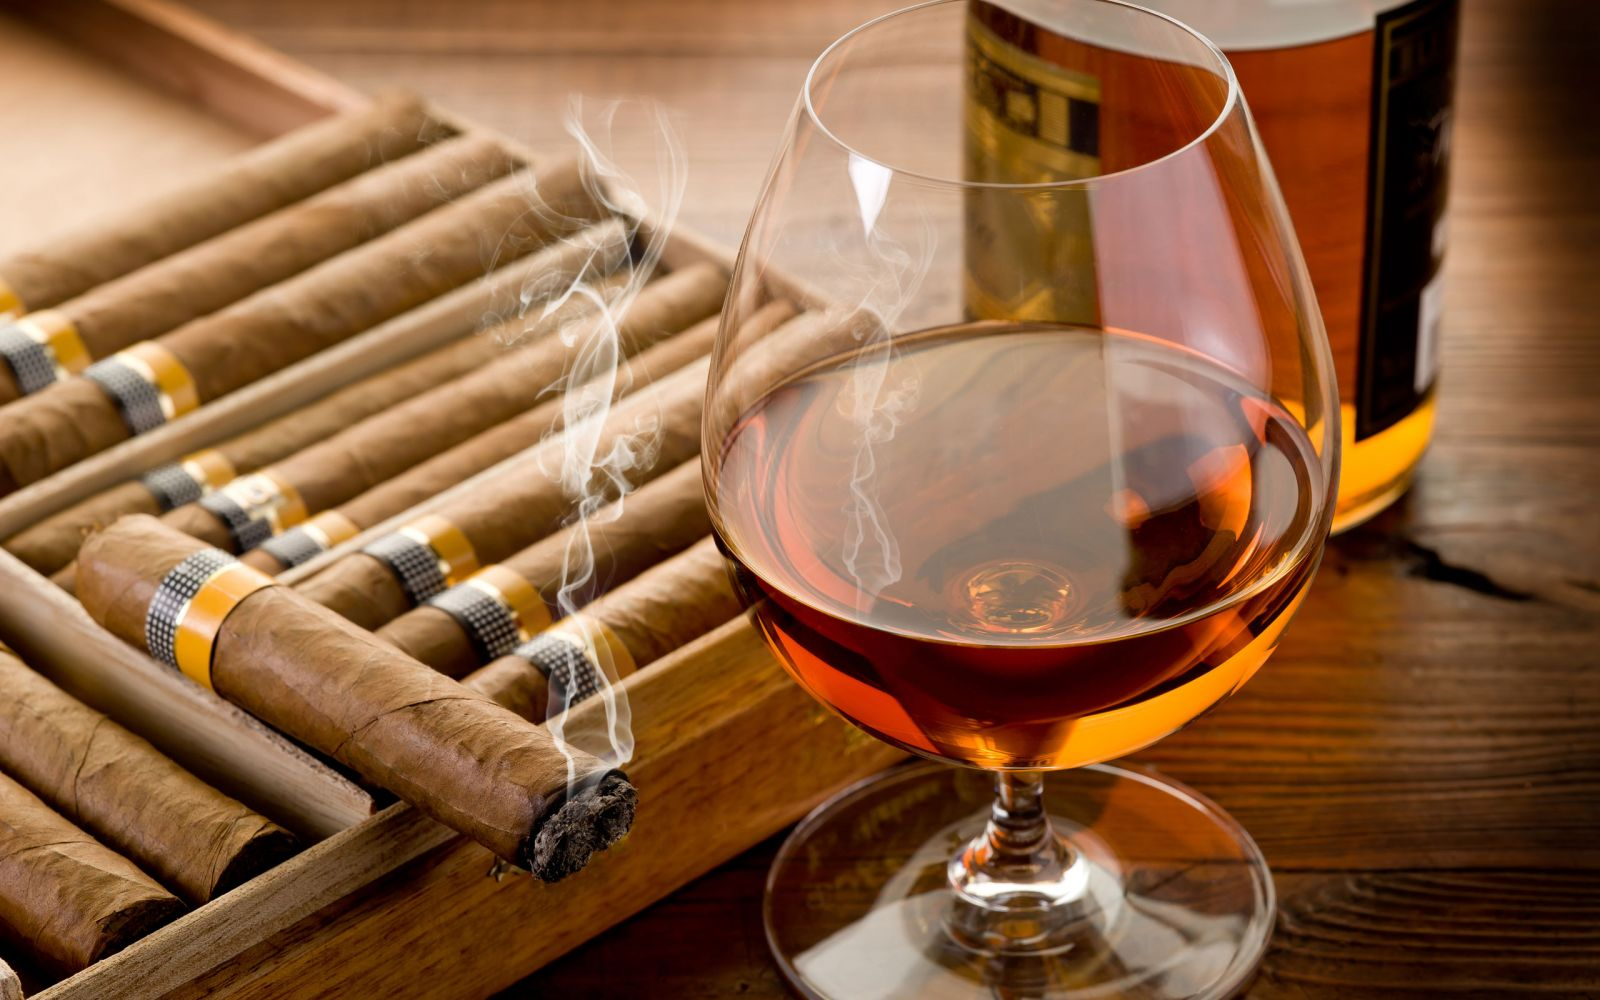 https://i0.wp.com/www.cursodecocteles.com/img/site/images/Cigar-Smoke-And-Cognac.jpeg